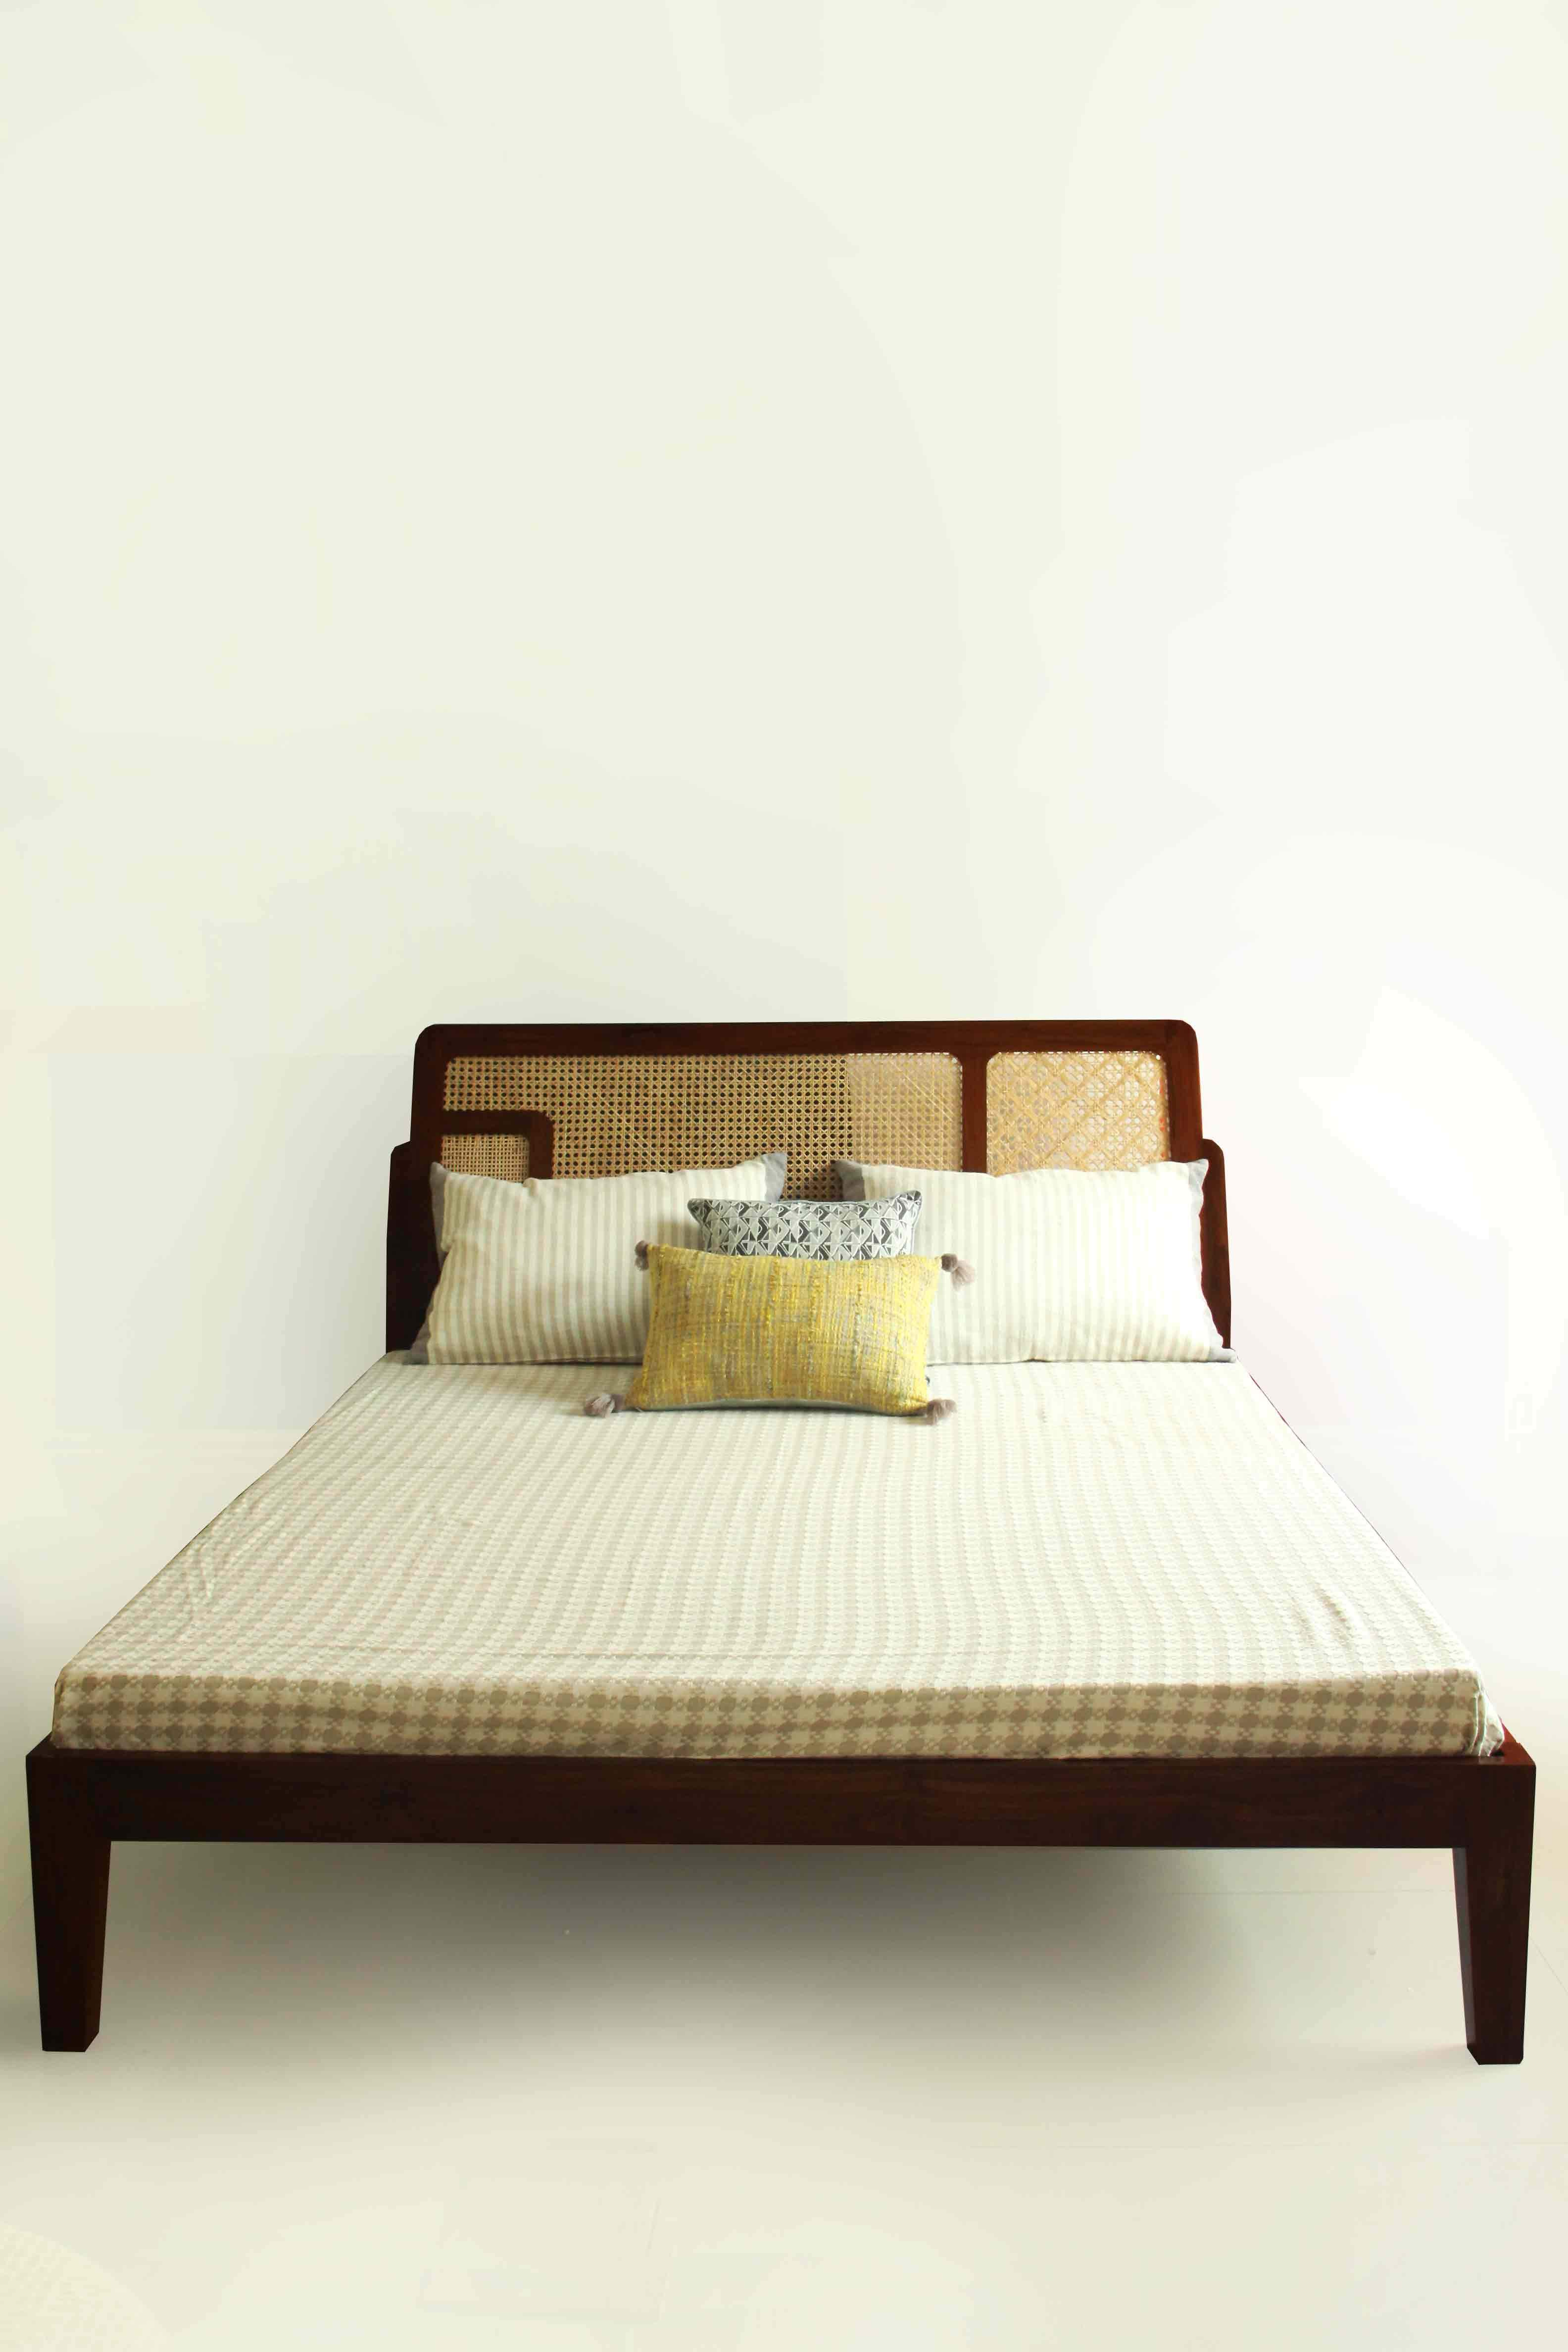 Freedom Headboard Retro Bedroom Furniture Ideas Modern Headboards And Bed